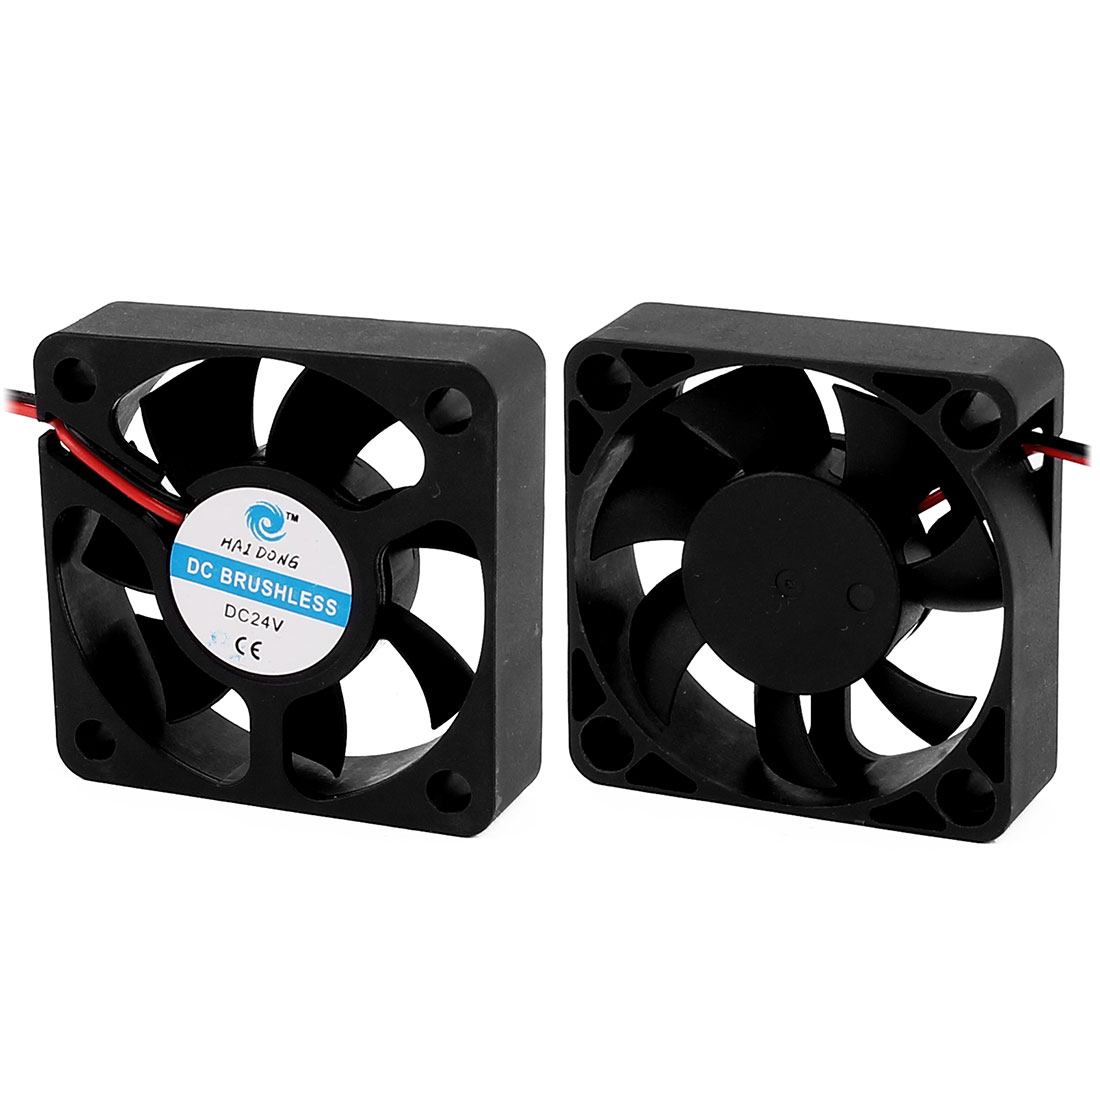 2DC 24V 0.06A 5x5x1.5cm 2-Wire 7 Vanes Black Case Cooling Fan for PC Case Cooler